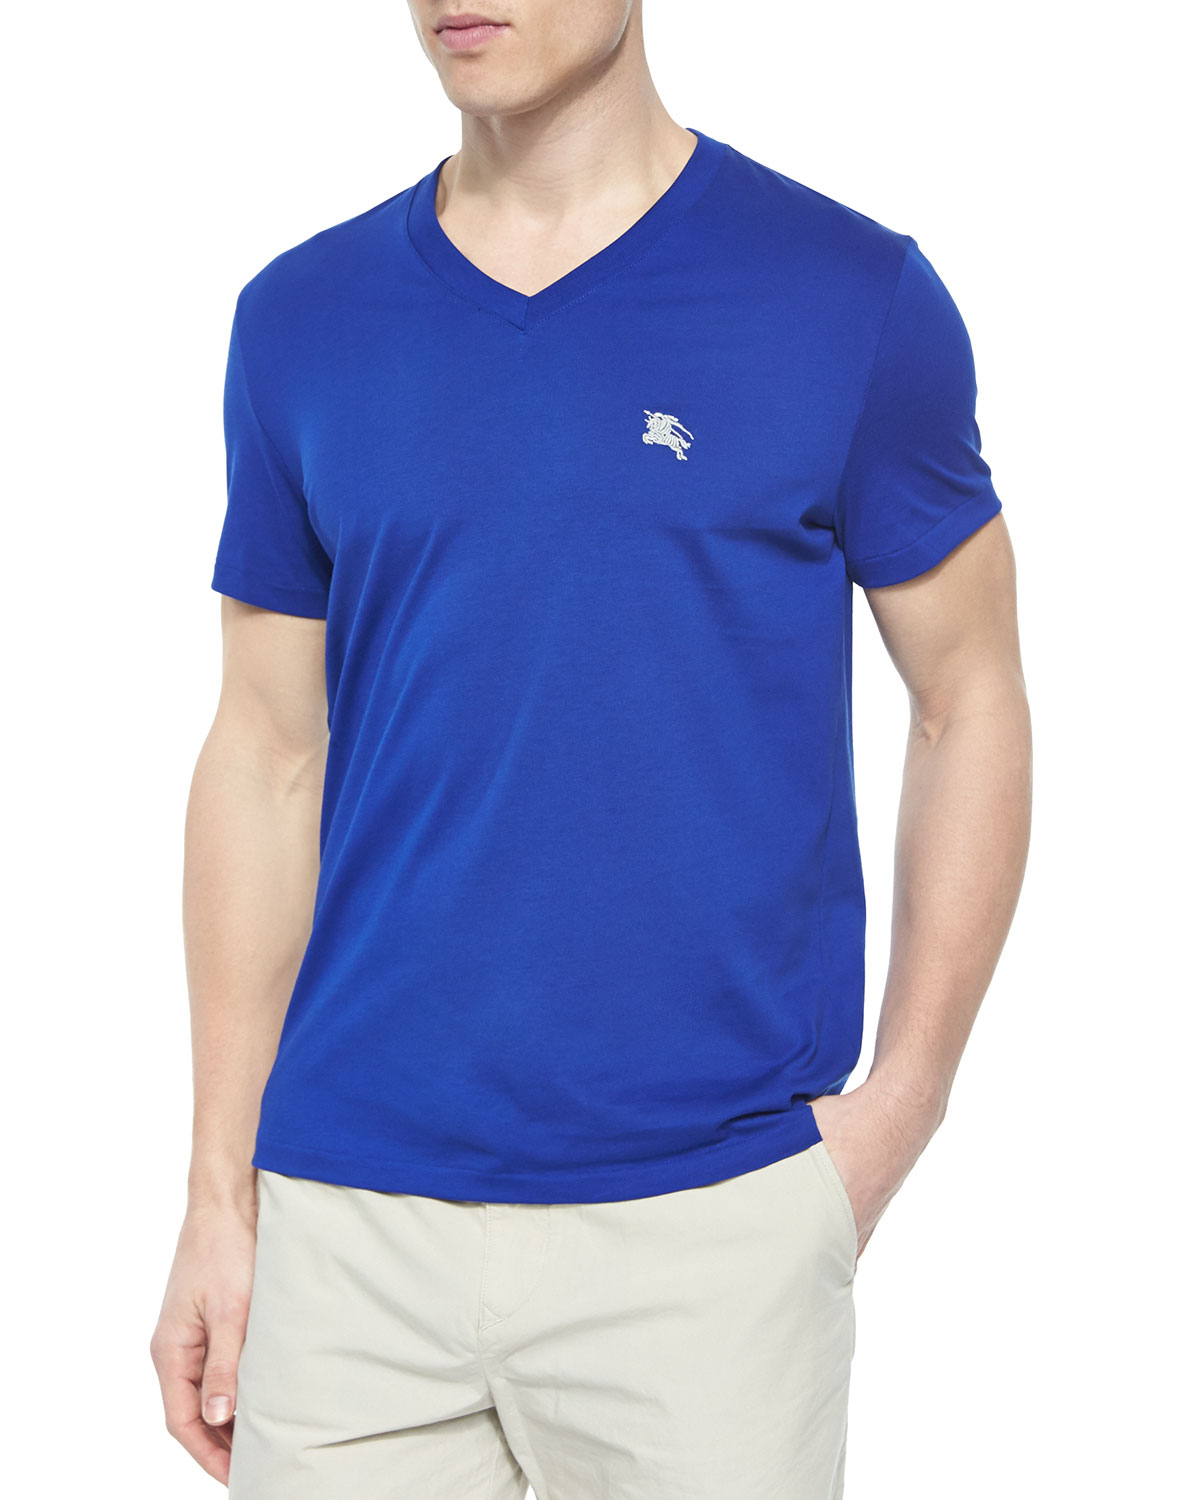 Equestrian Knight V-Neck Short-Sleeve T-Shirt, Cobalt Blue